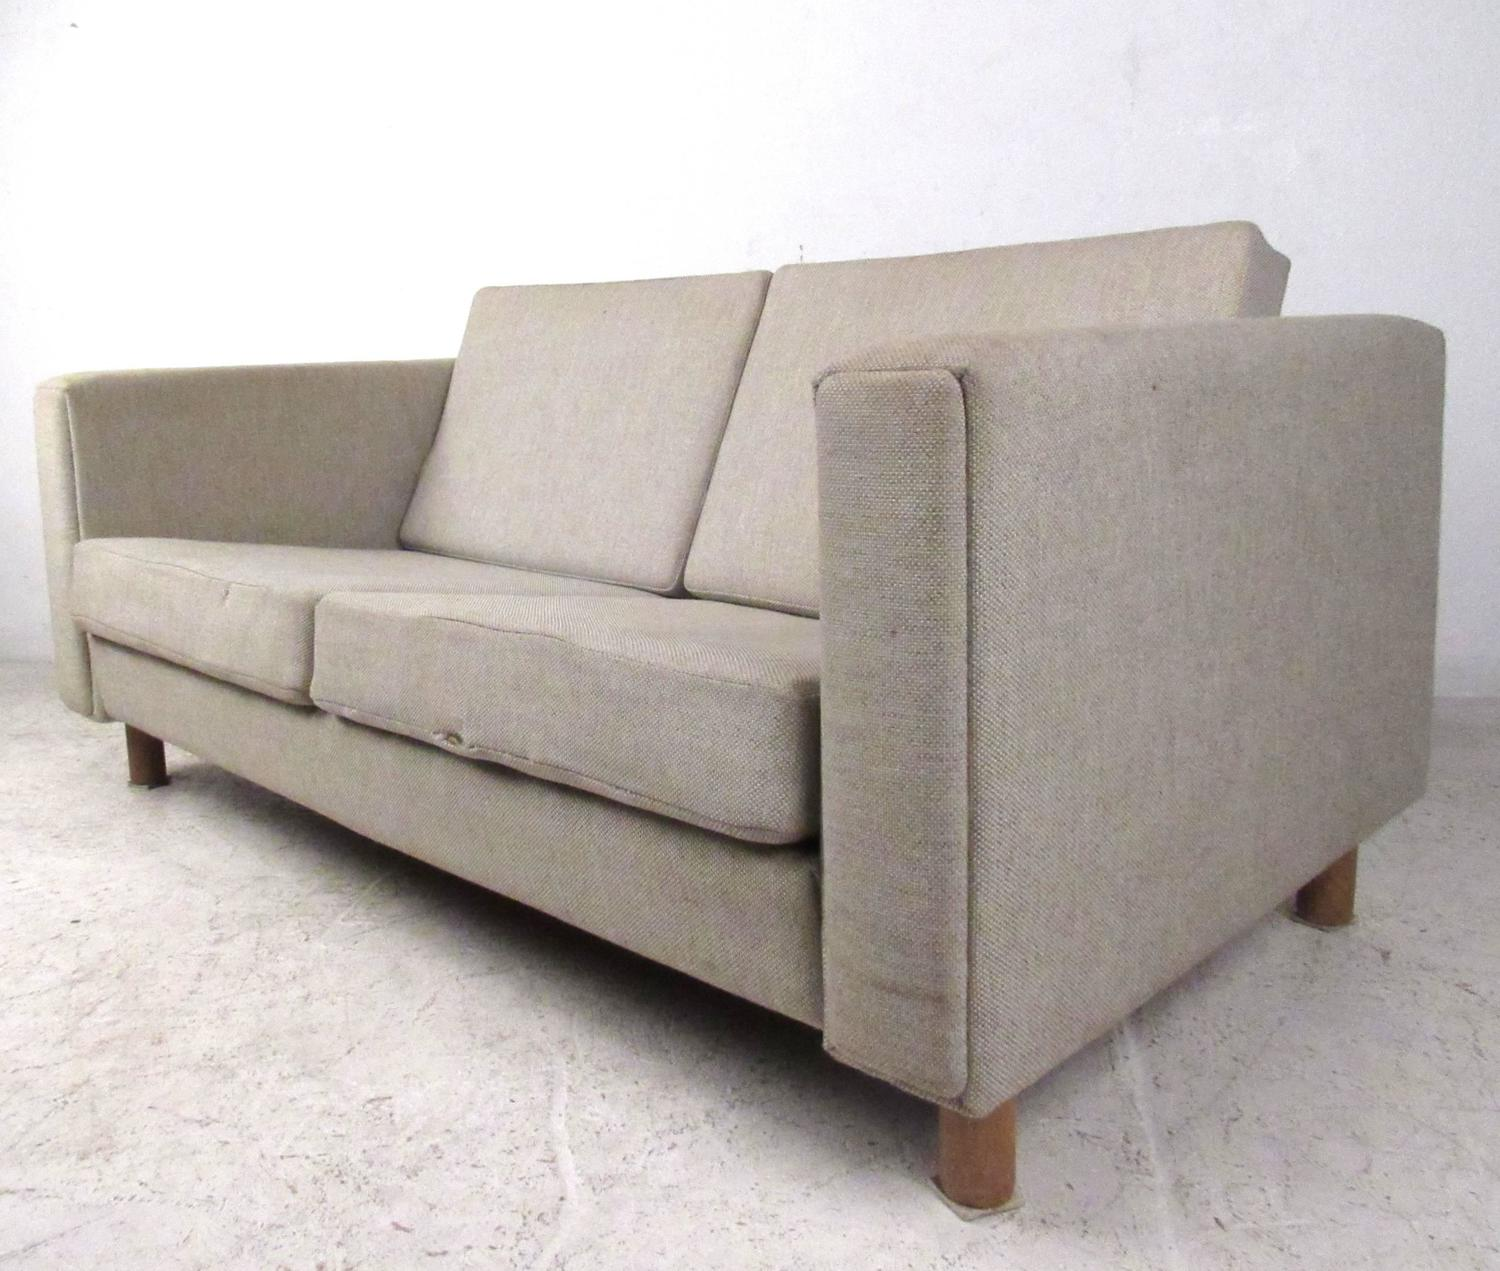 matching mid century modern sofa and loveseat by hans